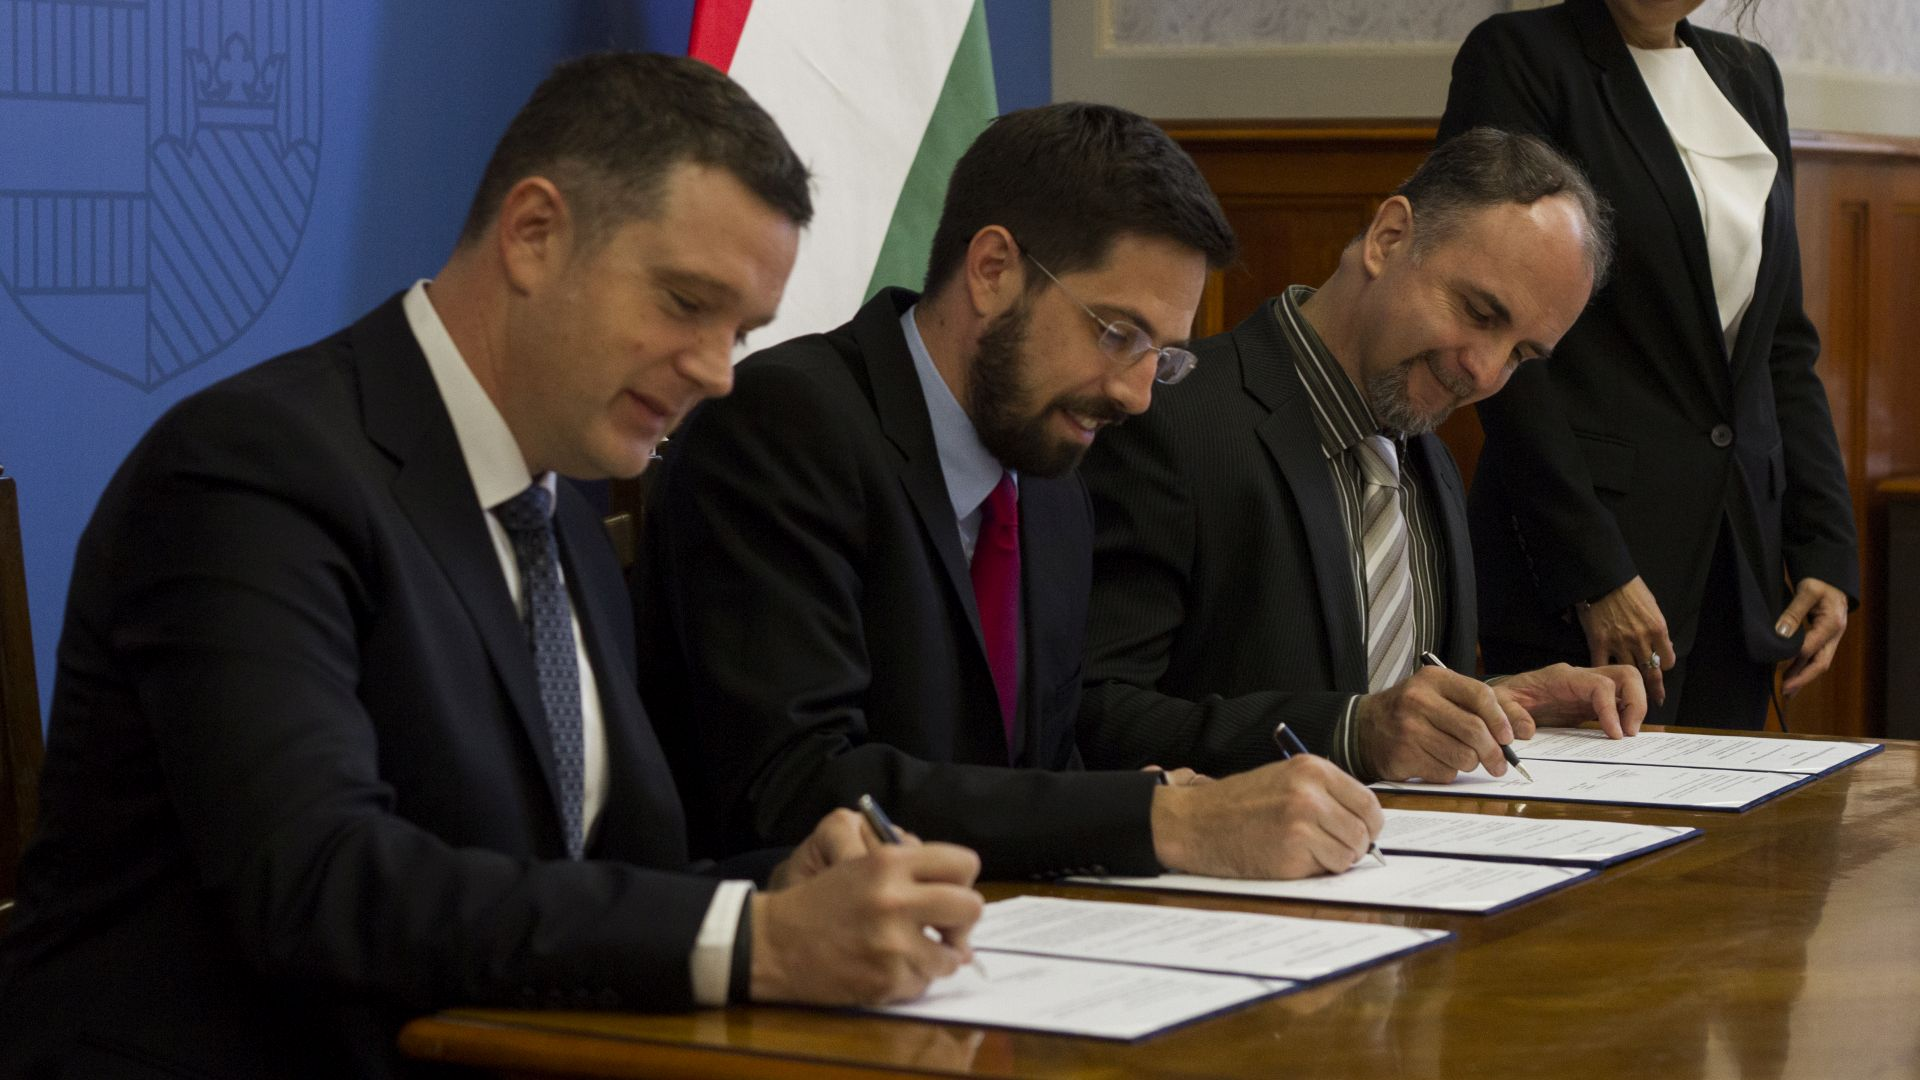 Signing the strategic partnership agreement at the Ministry of Foreign Affairs and Trade